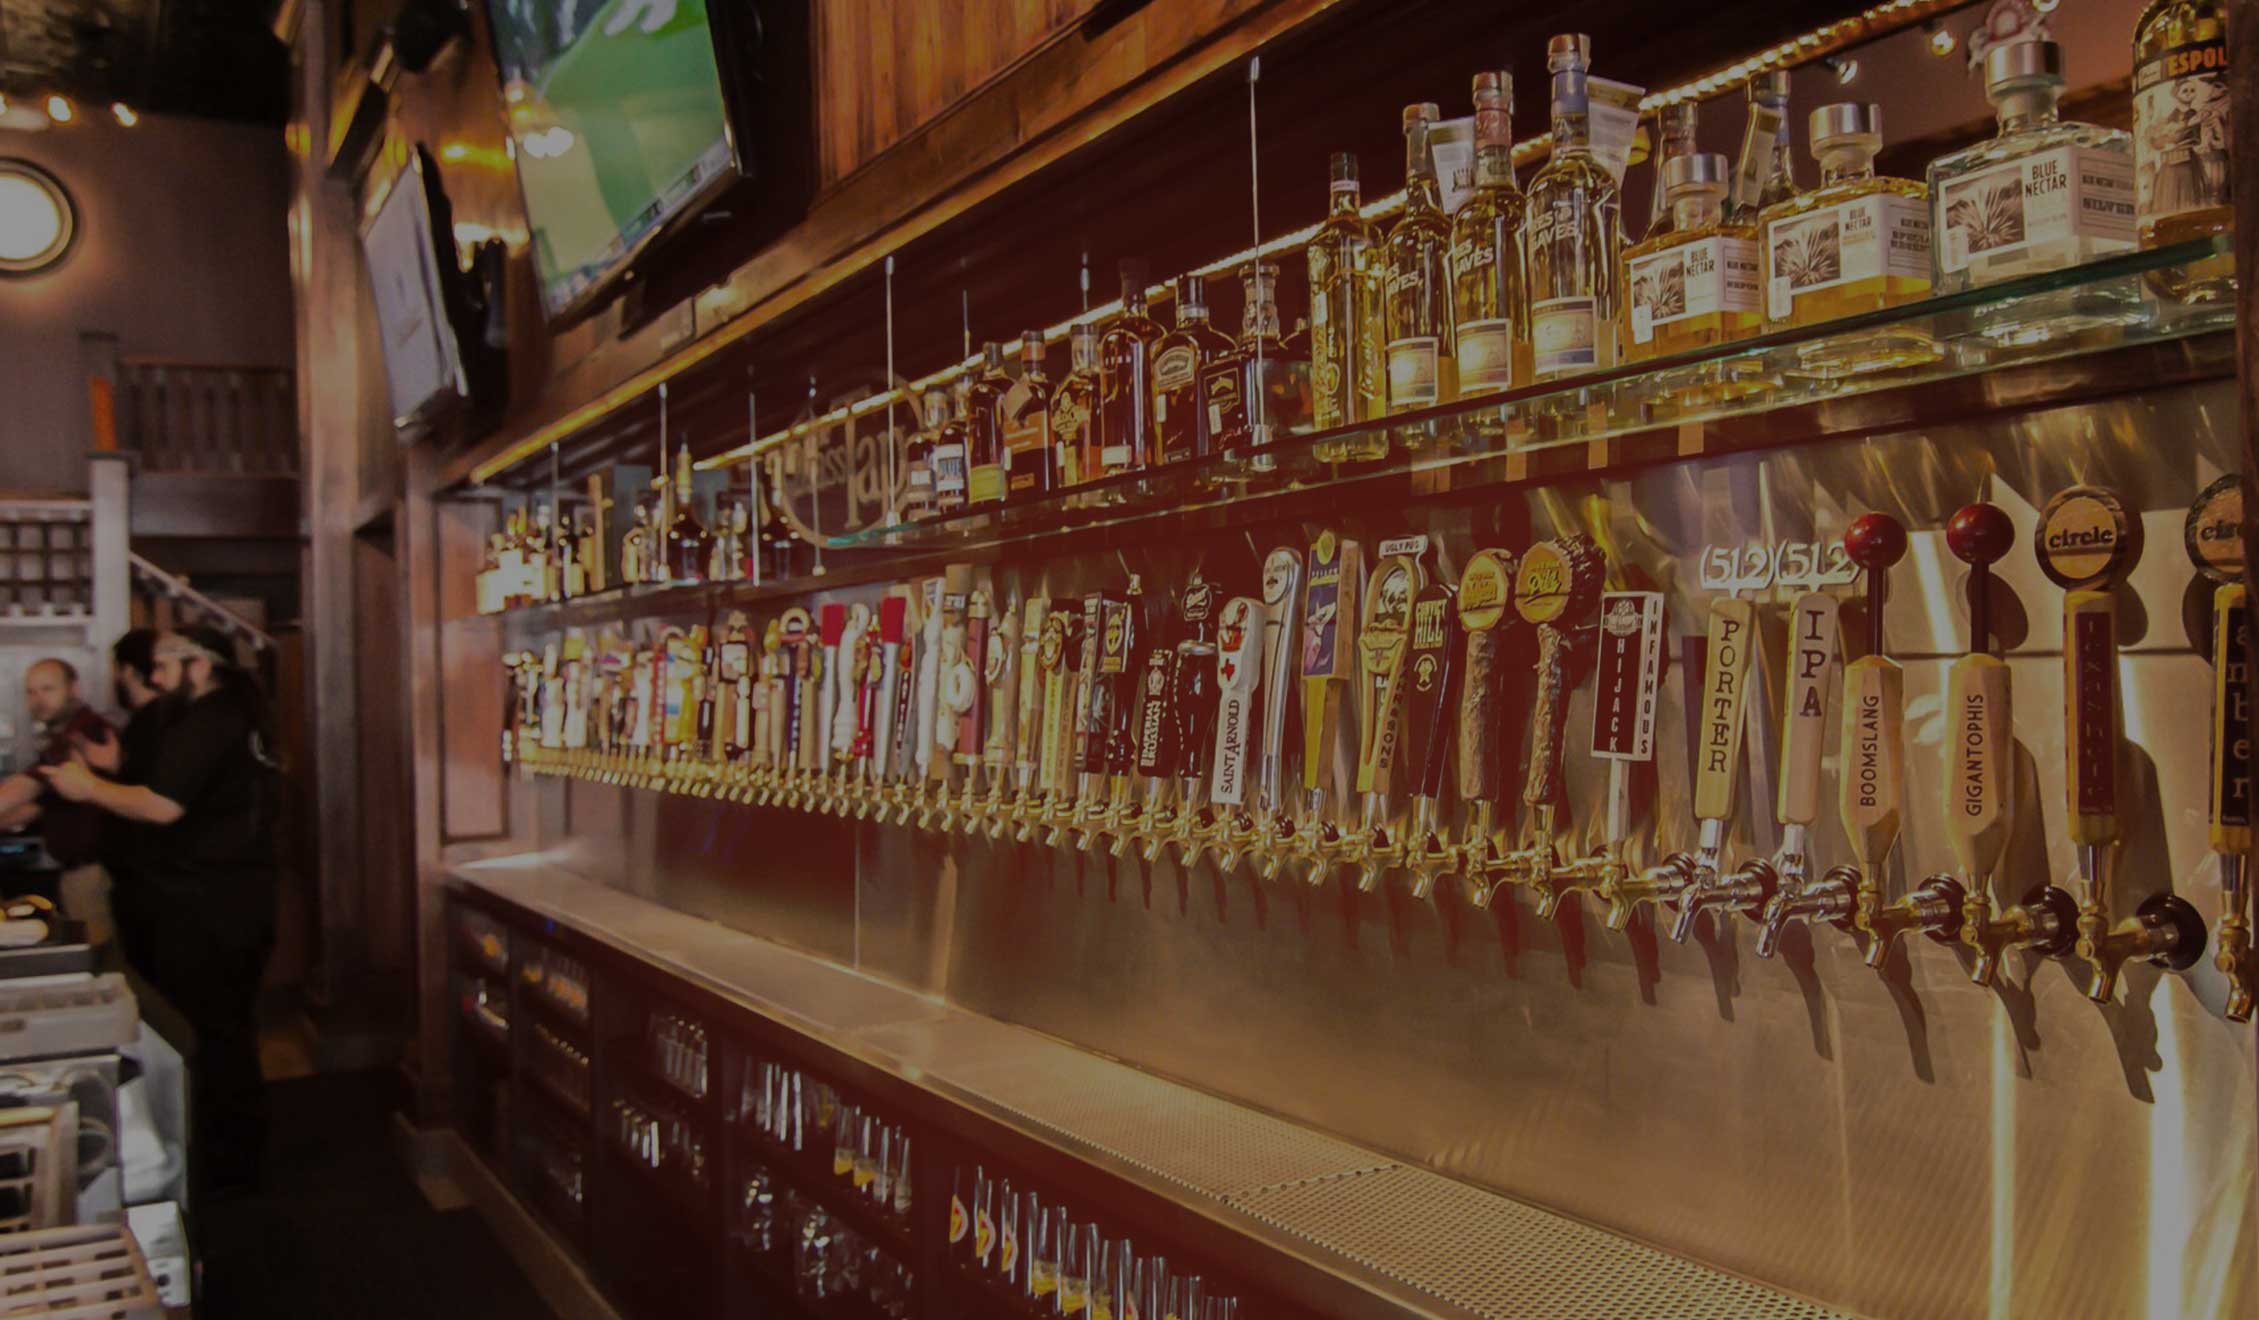 Hundreds of taps, including specialty and local beers